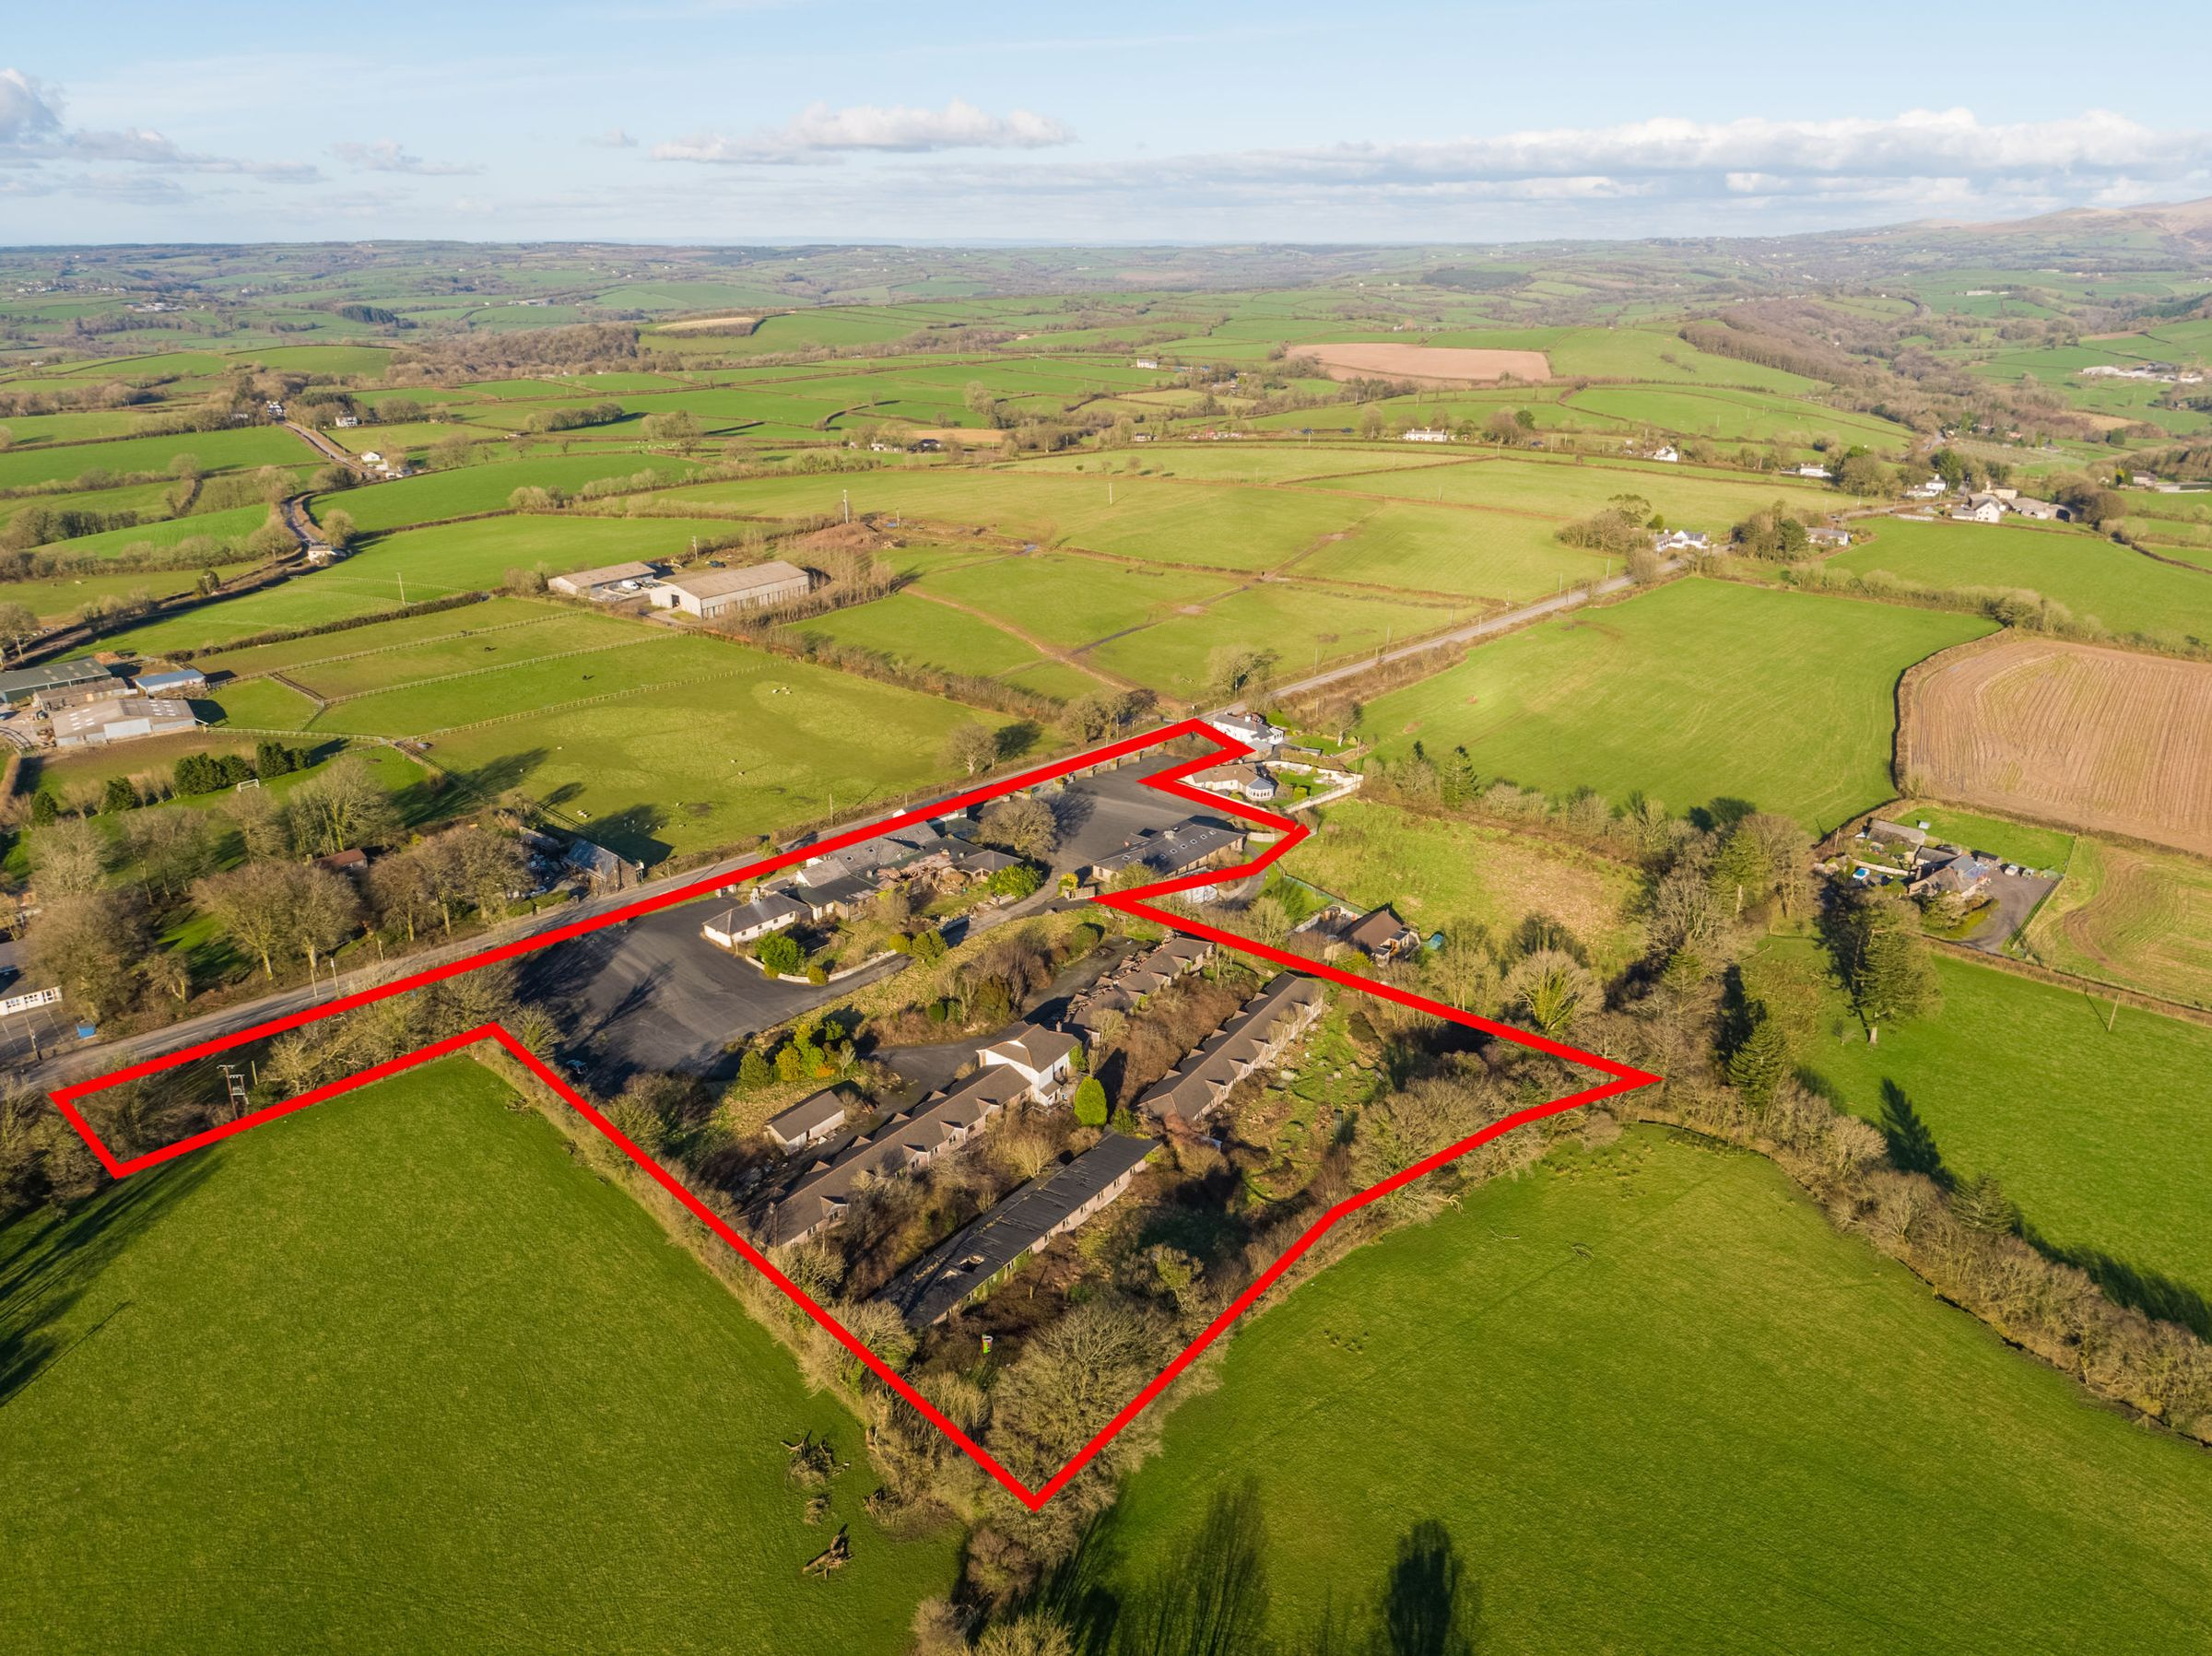 Property photo 1 of 9. Aerial Image